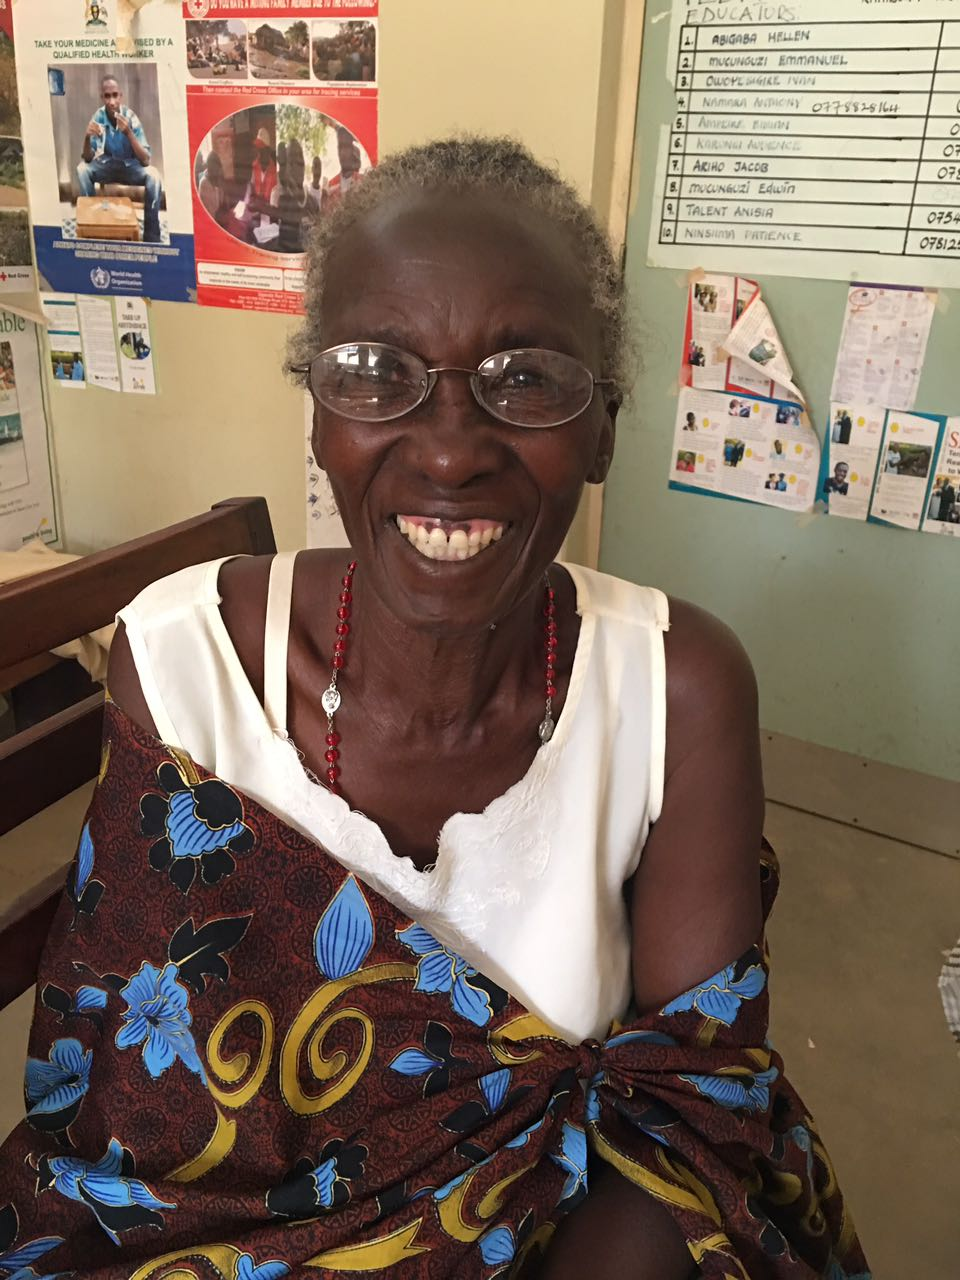 Big smiles from a patient after a vision test led to the right prescription and new glasses